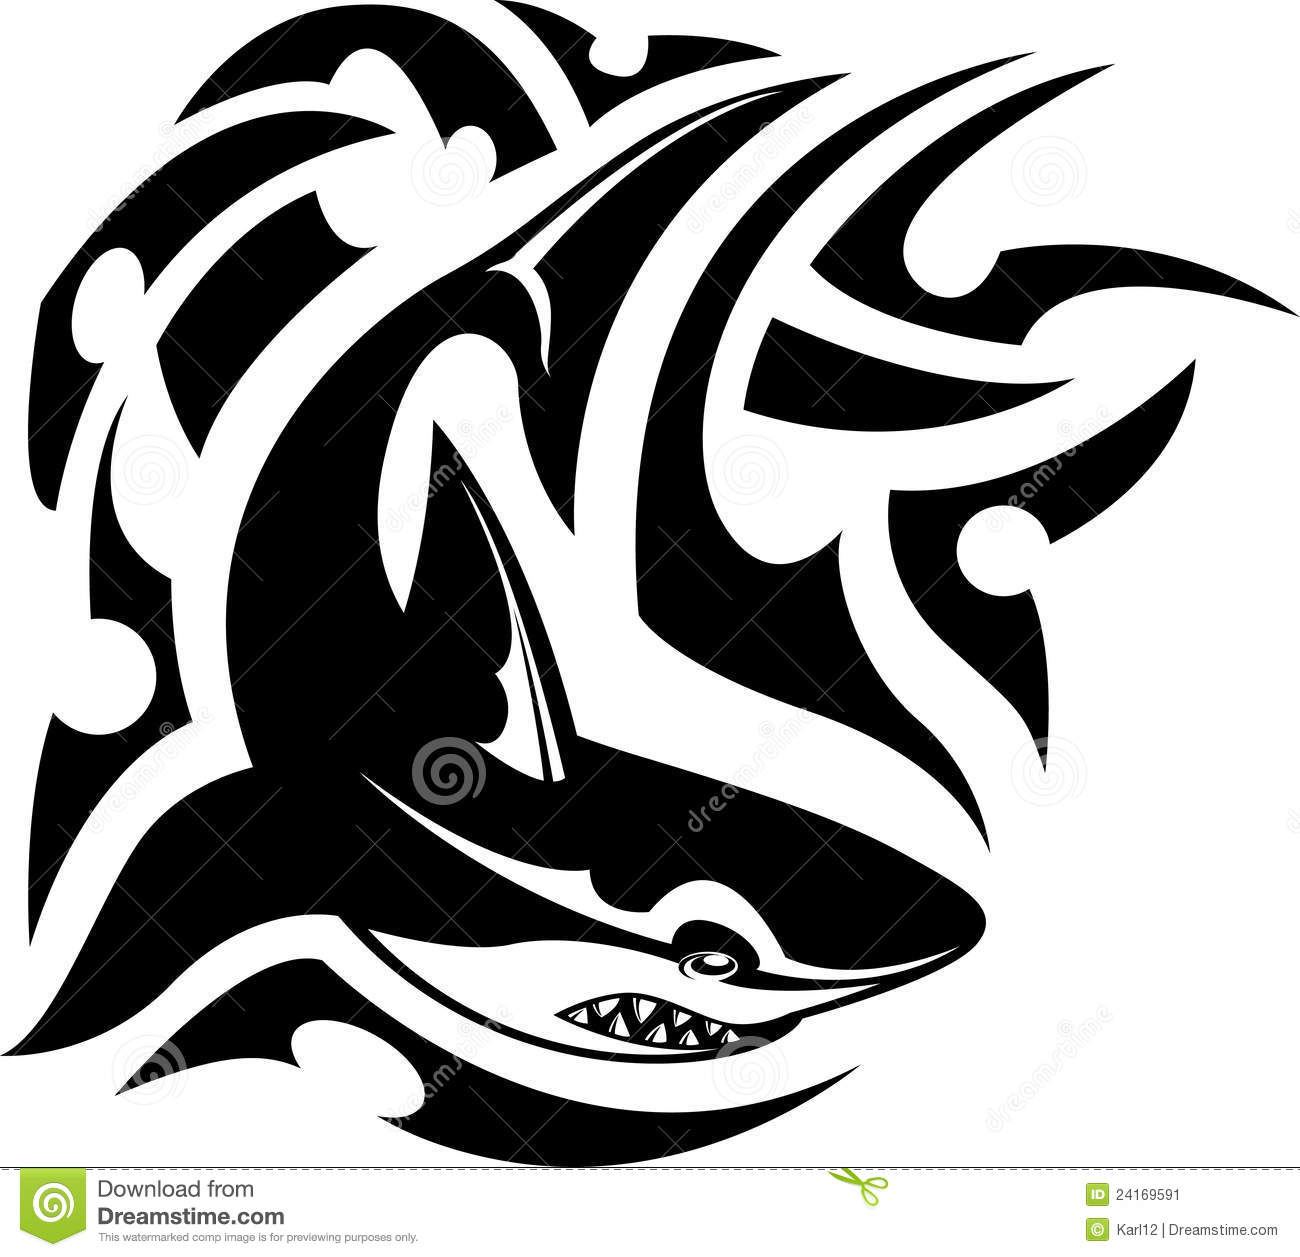 Tribal-Tattoos tribal-tattoo-shark-24169591